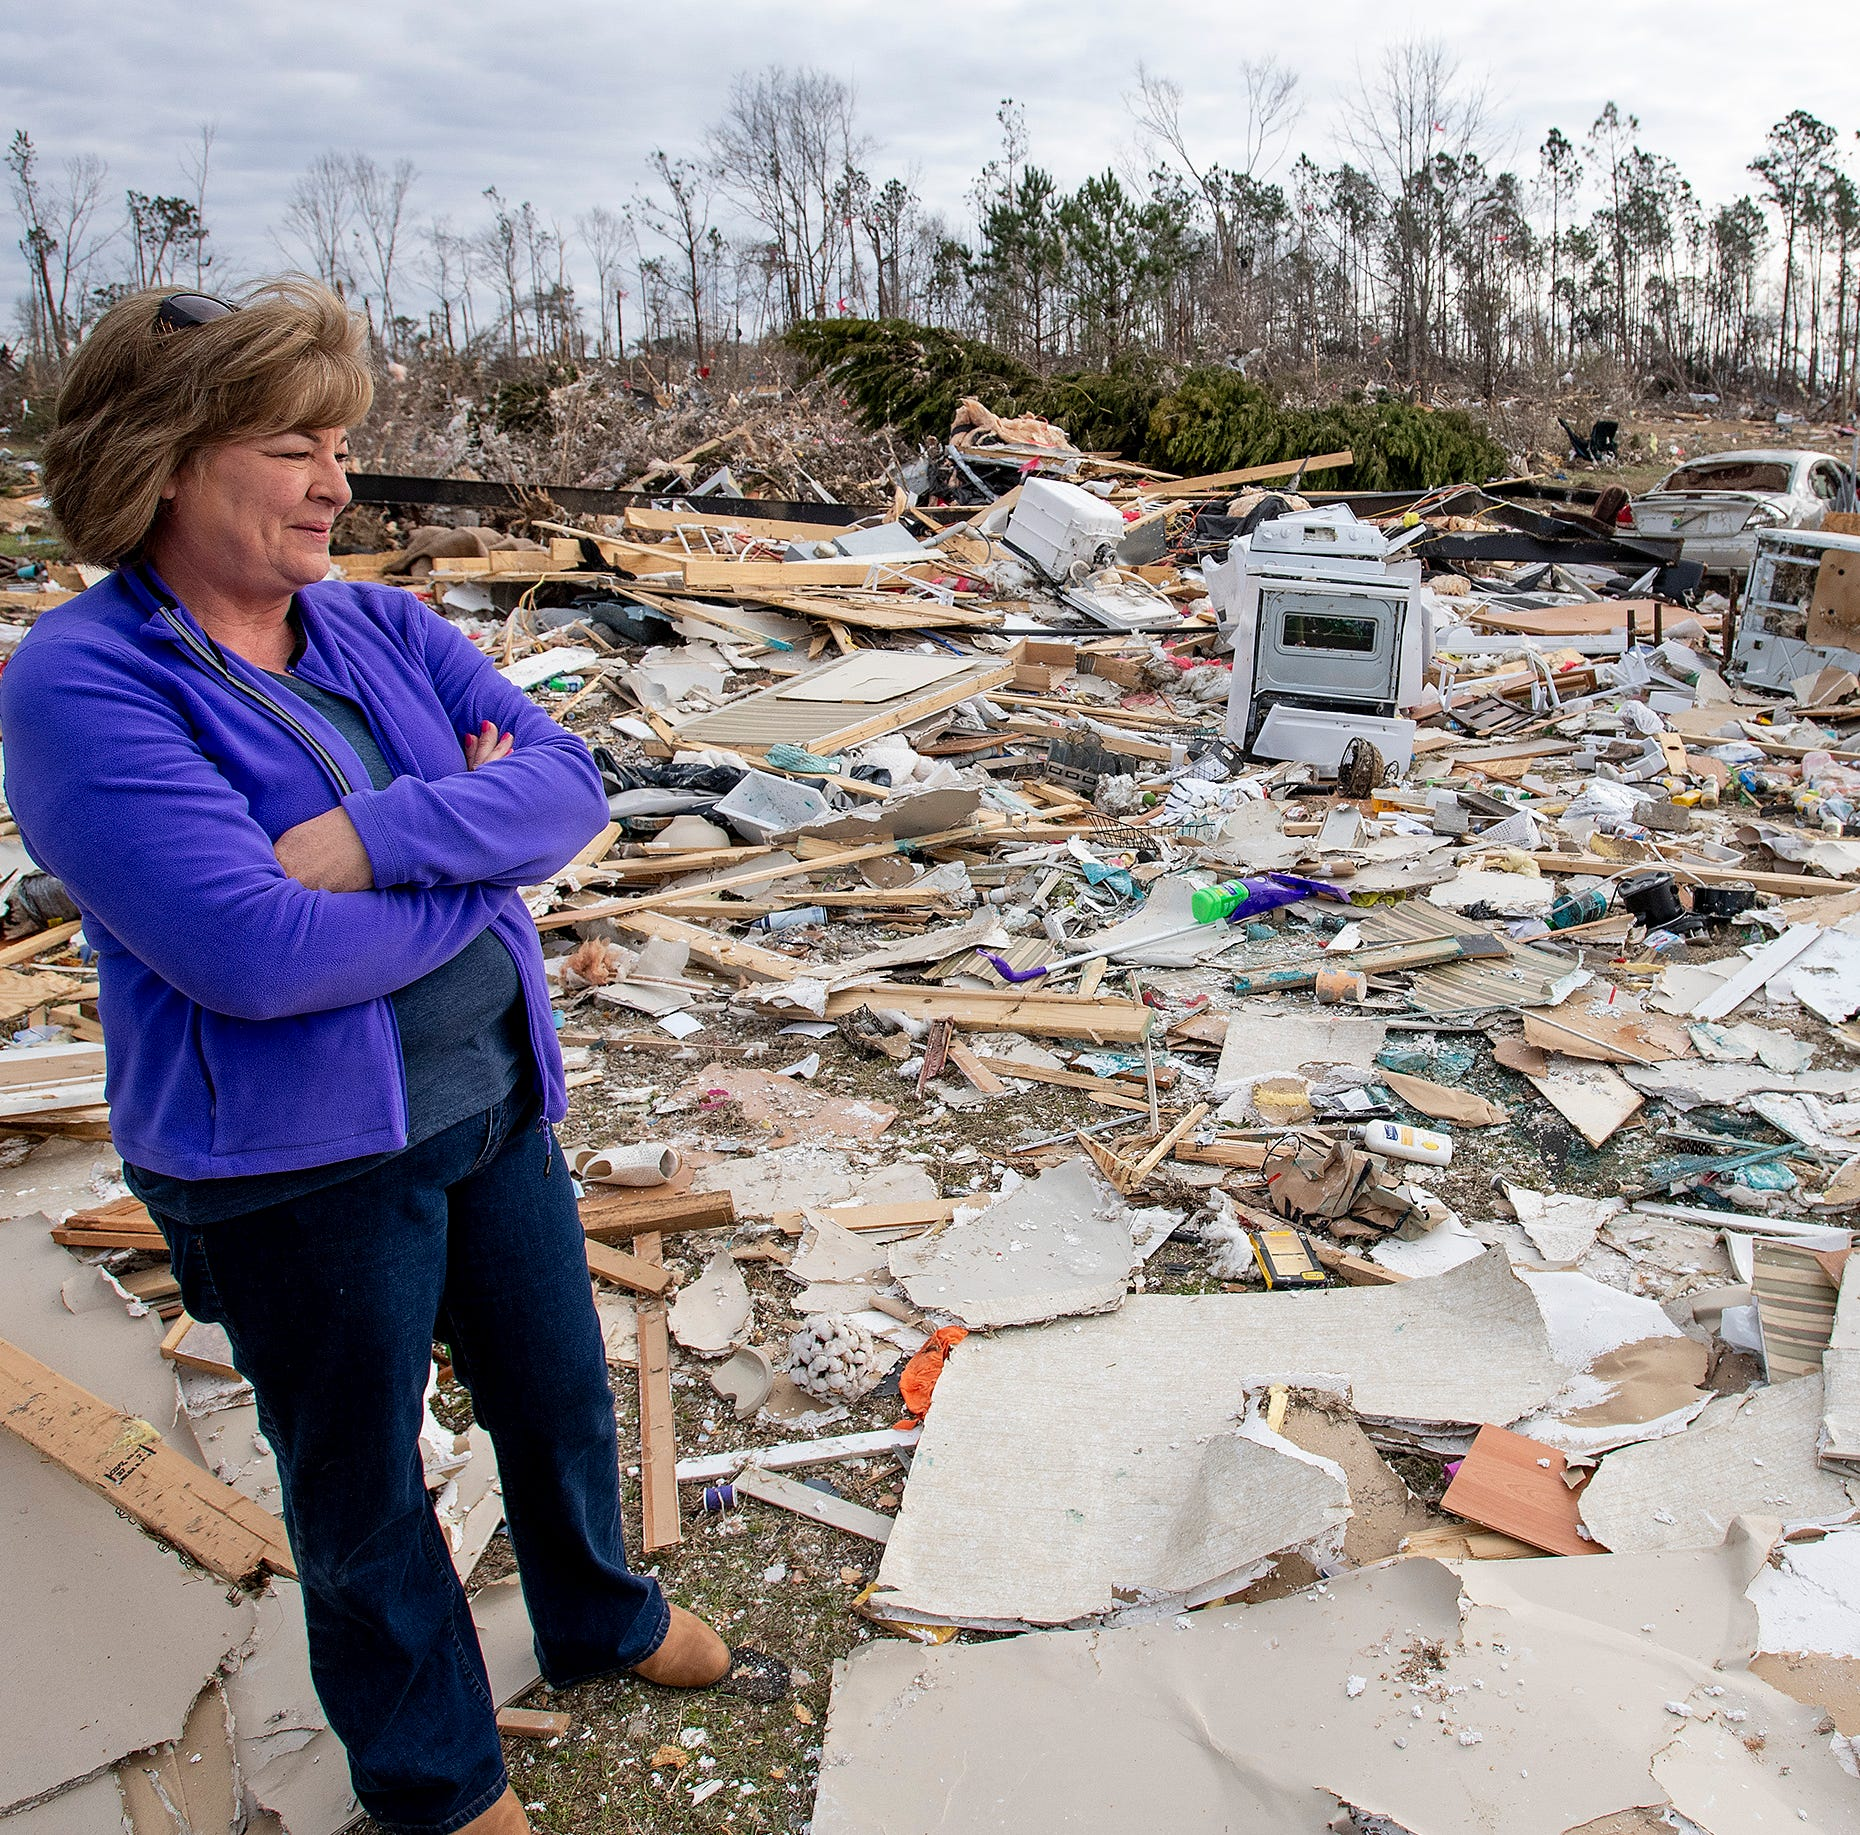 The heart of Dixie Alley: Why Alabama tornadoes are the deadliest in the nation